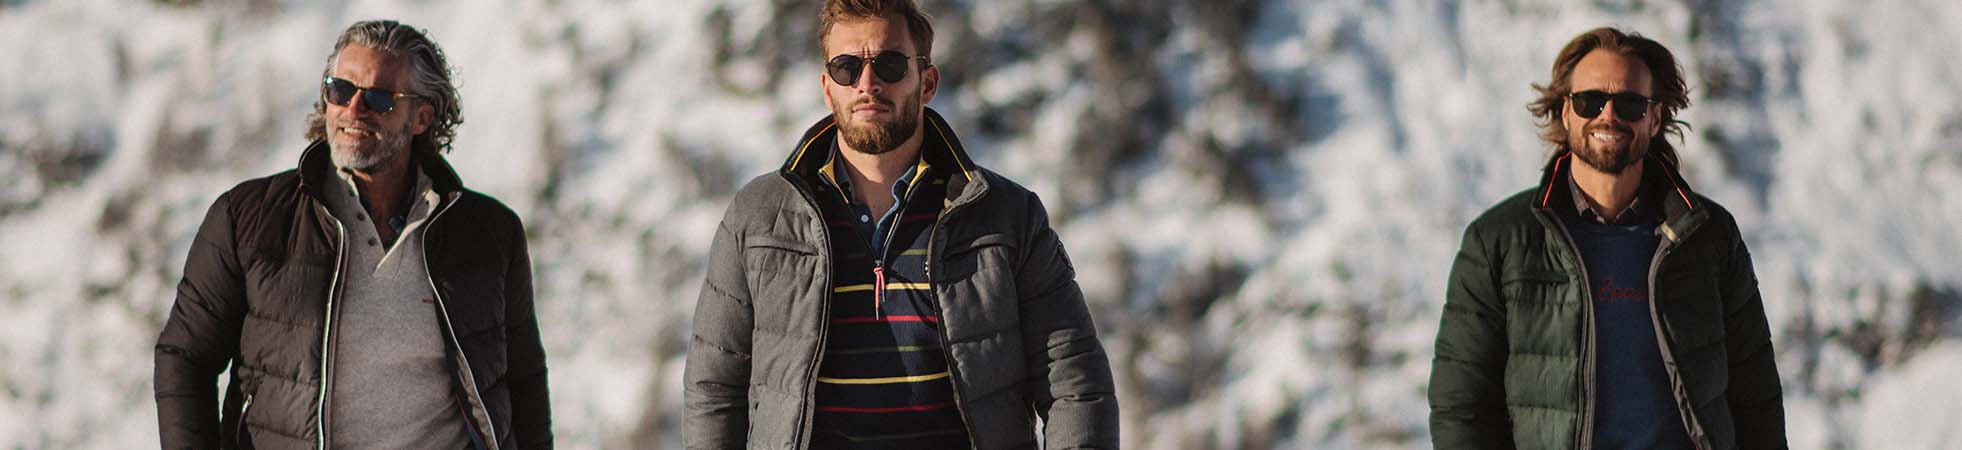 Men\'s coats at Suitable ✔ Wide range of styles and brands ✔ Barbour, Save the Duck, Napapijri, Wellensteyn and more ✔ Shop online